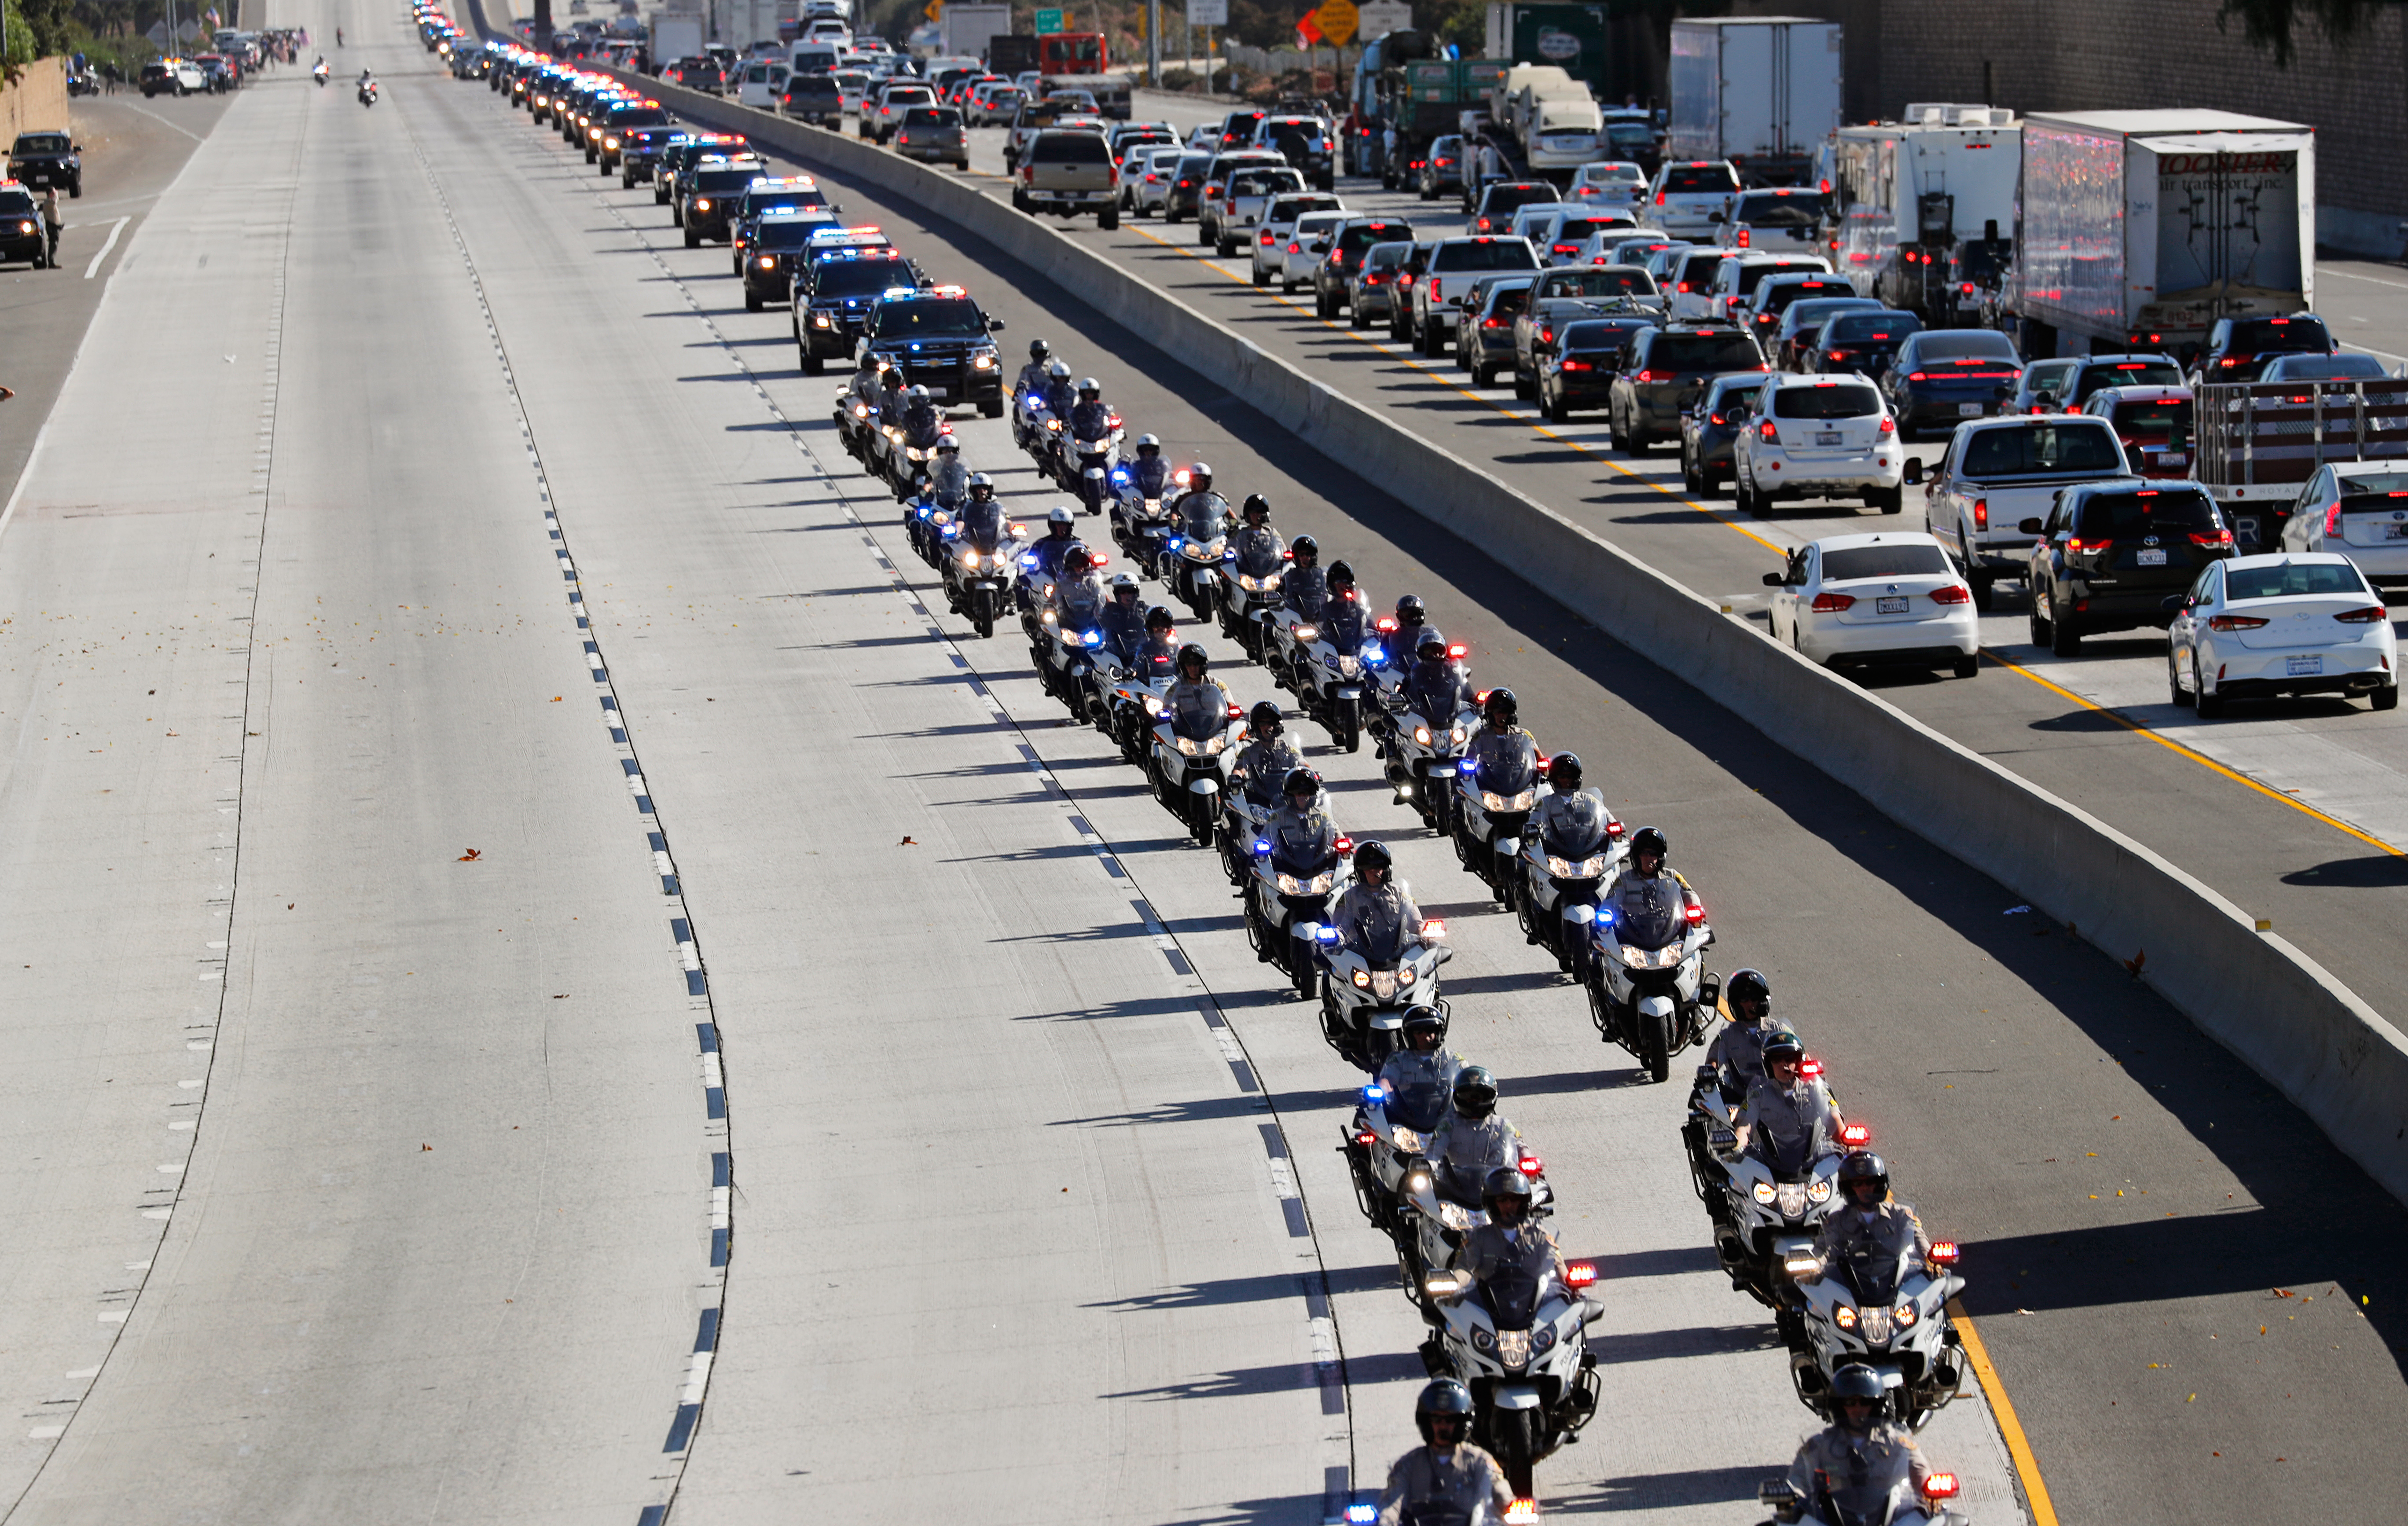 A procession for the body of Sergeant Ron Helus, who died in a shooting incident at a Thousand Oaks bar, drives down Ventura HIghway 101 in Thousand Oaks